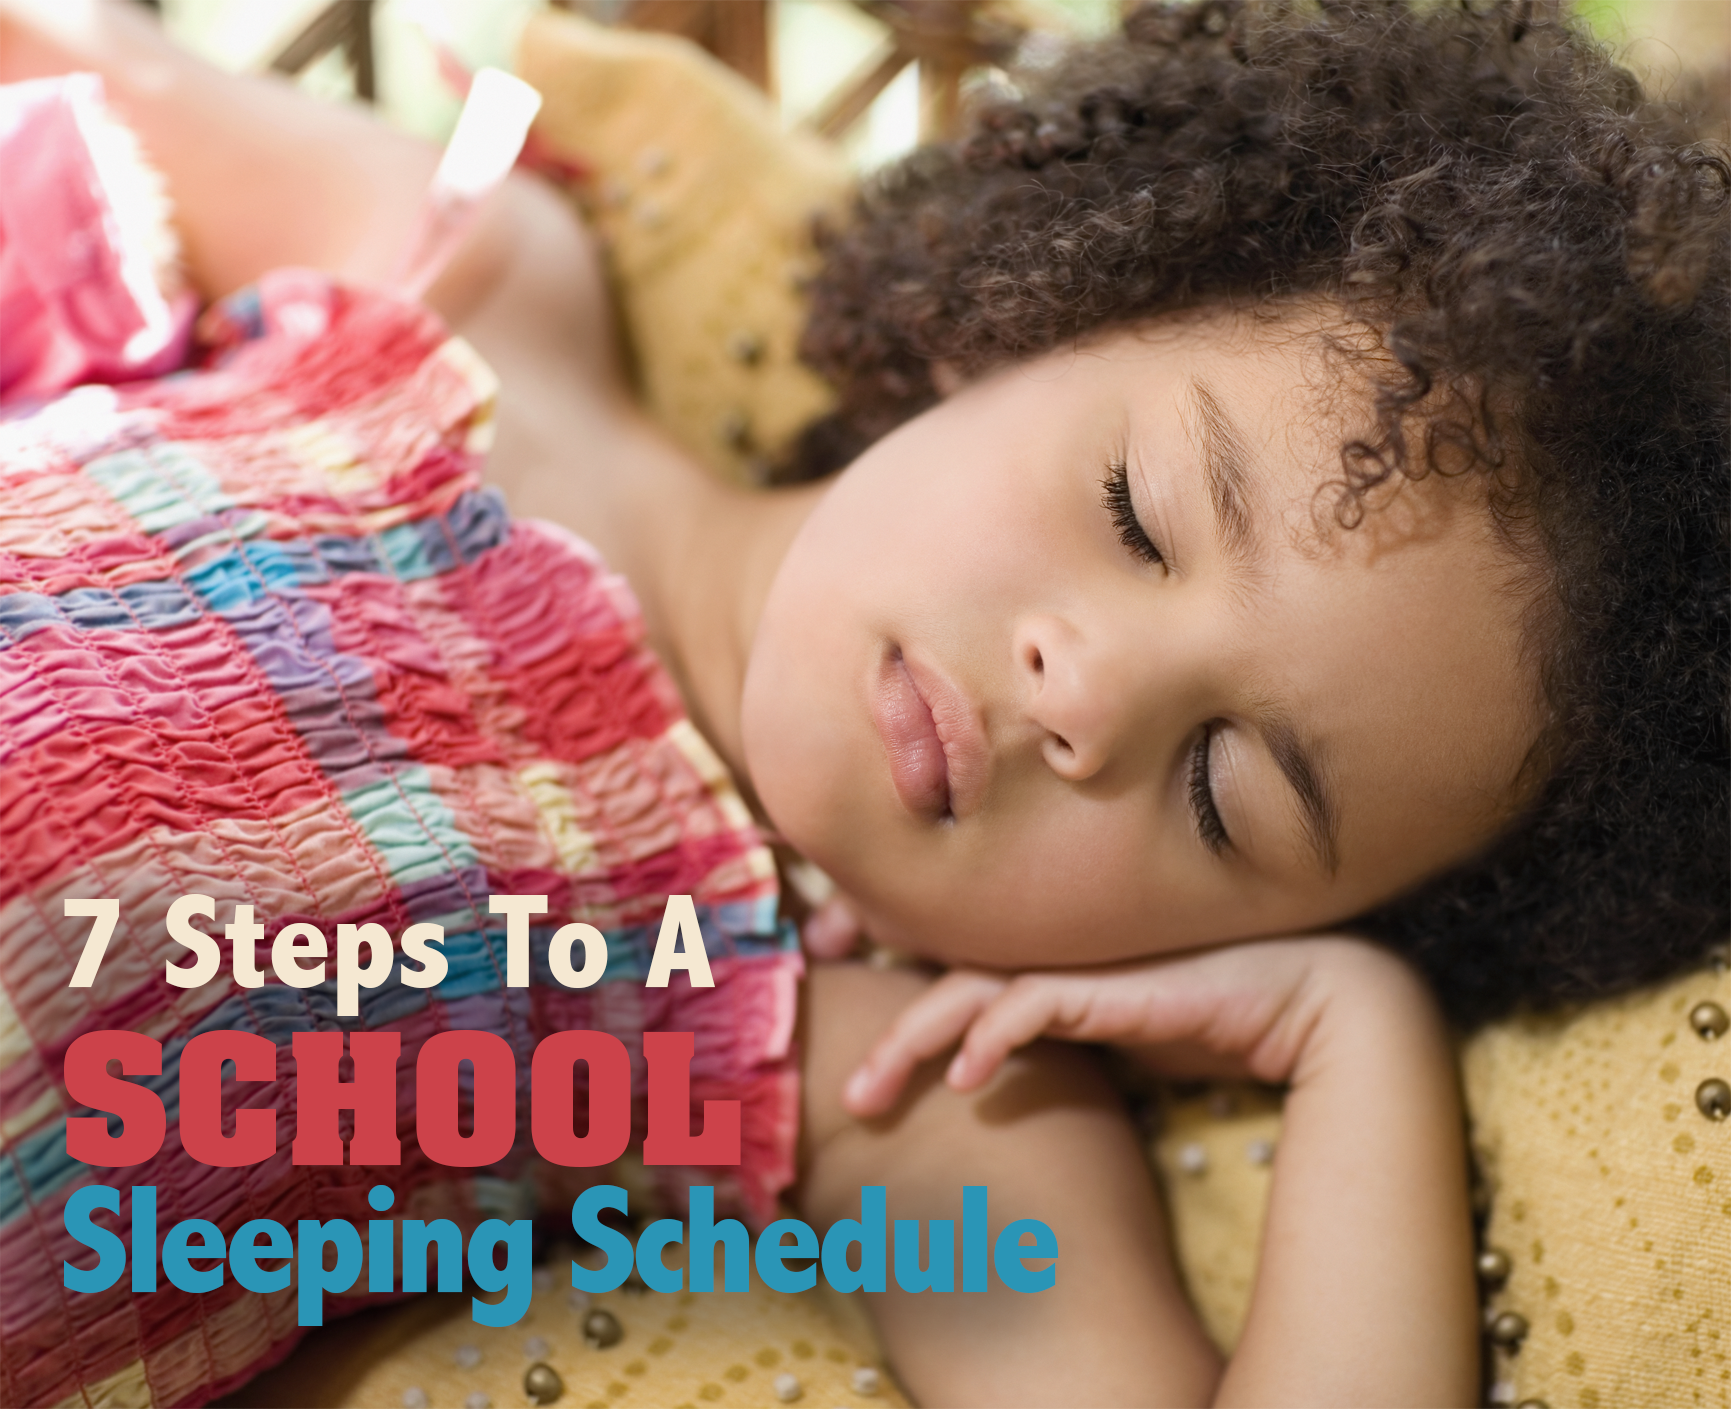 7 Steps to Get Your Child on a School Sleeping Schedule Now